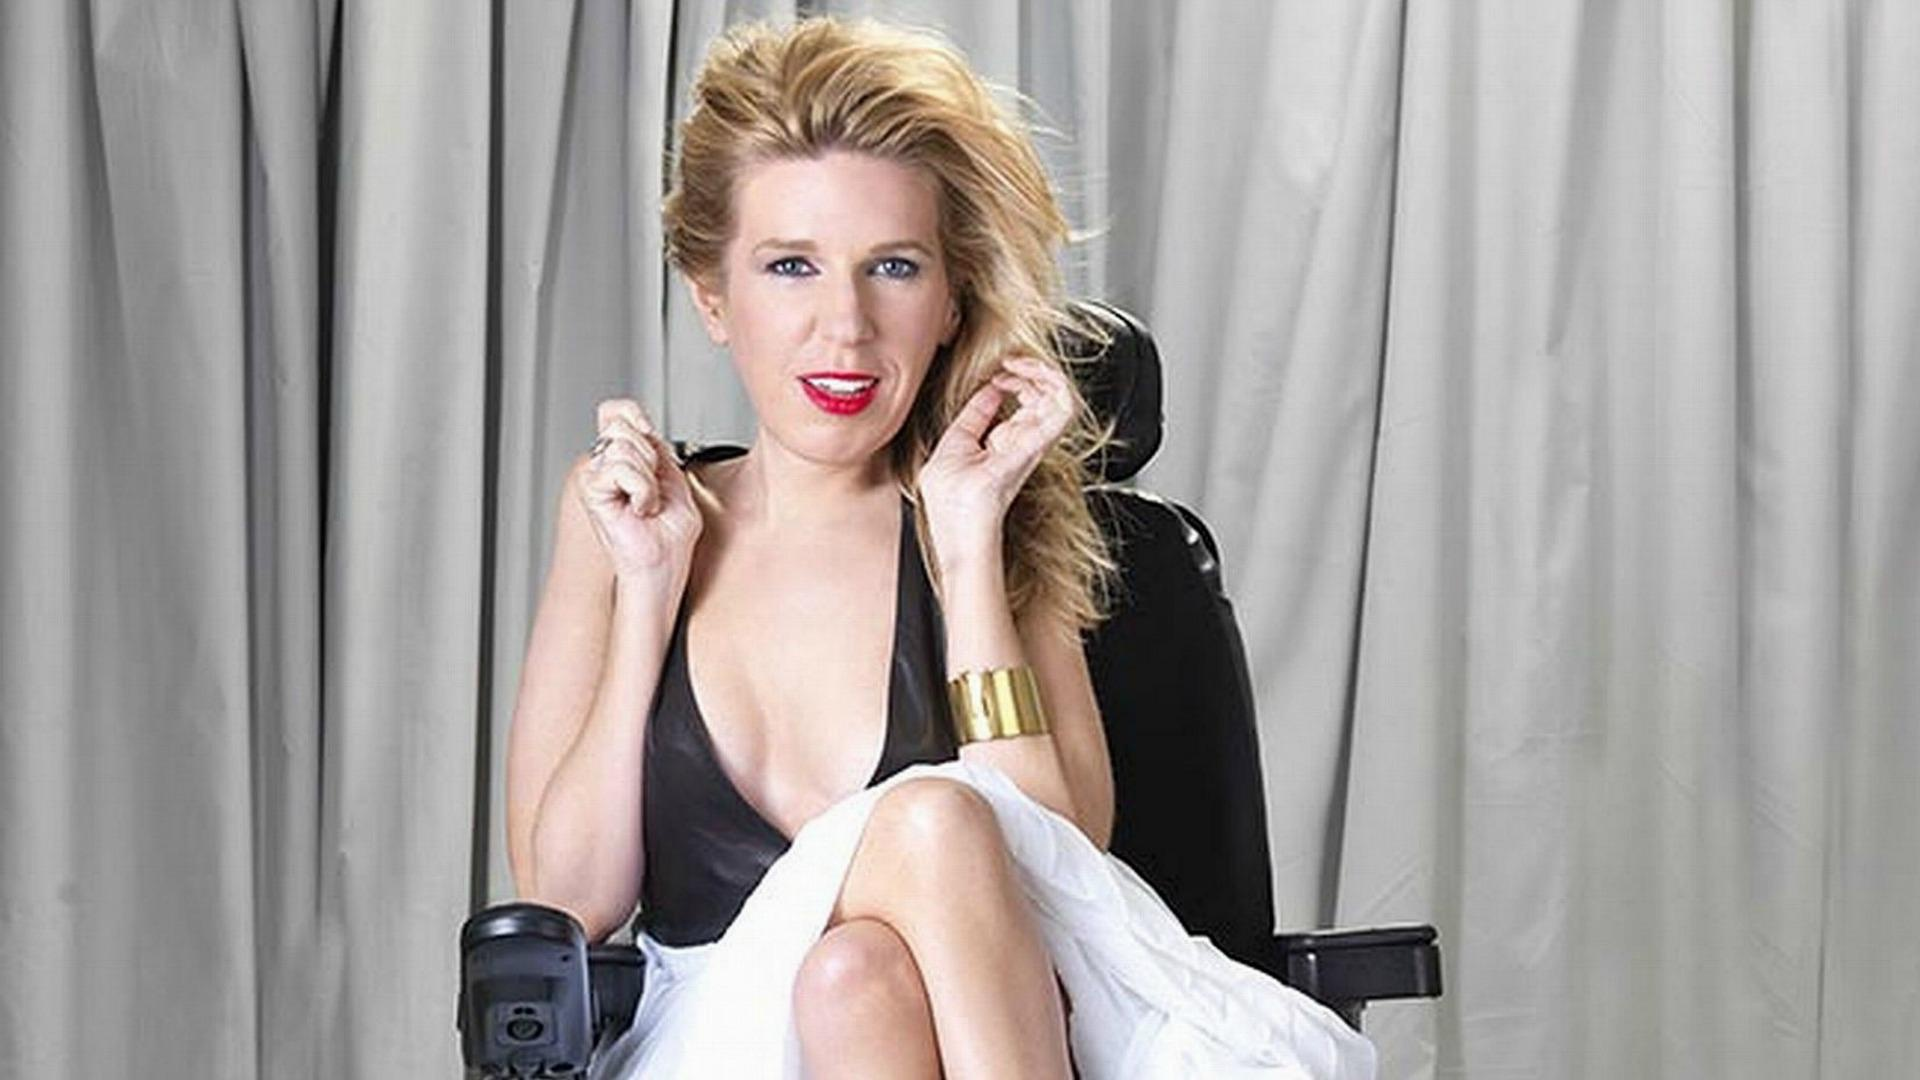 long eddy singles dating site Plentyoffish dating forums are a place to meet singles and get dating advice or parties which all in the long run costs entertaining dating site.